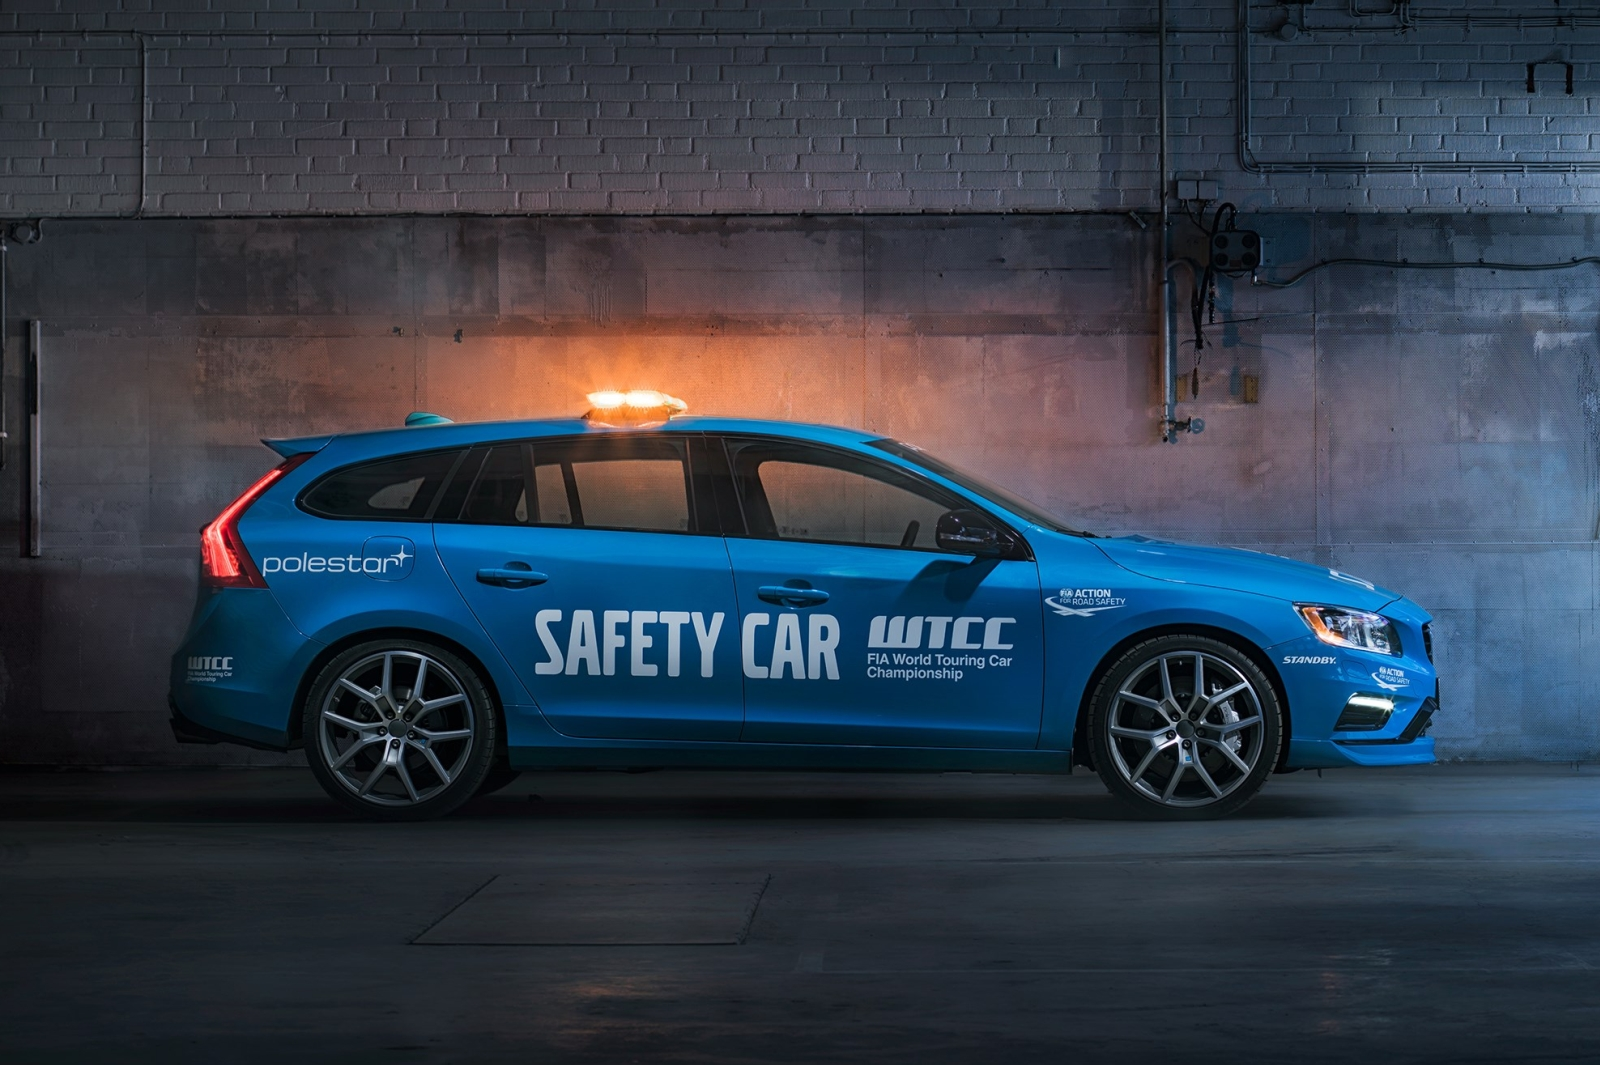 Volvo V60 Polestar Safety Car